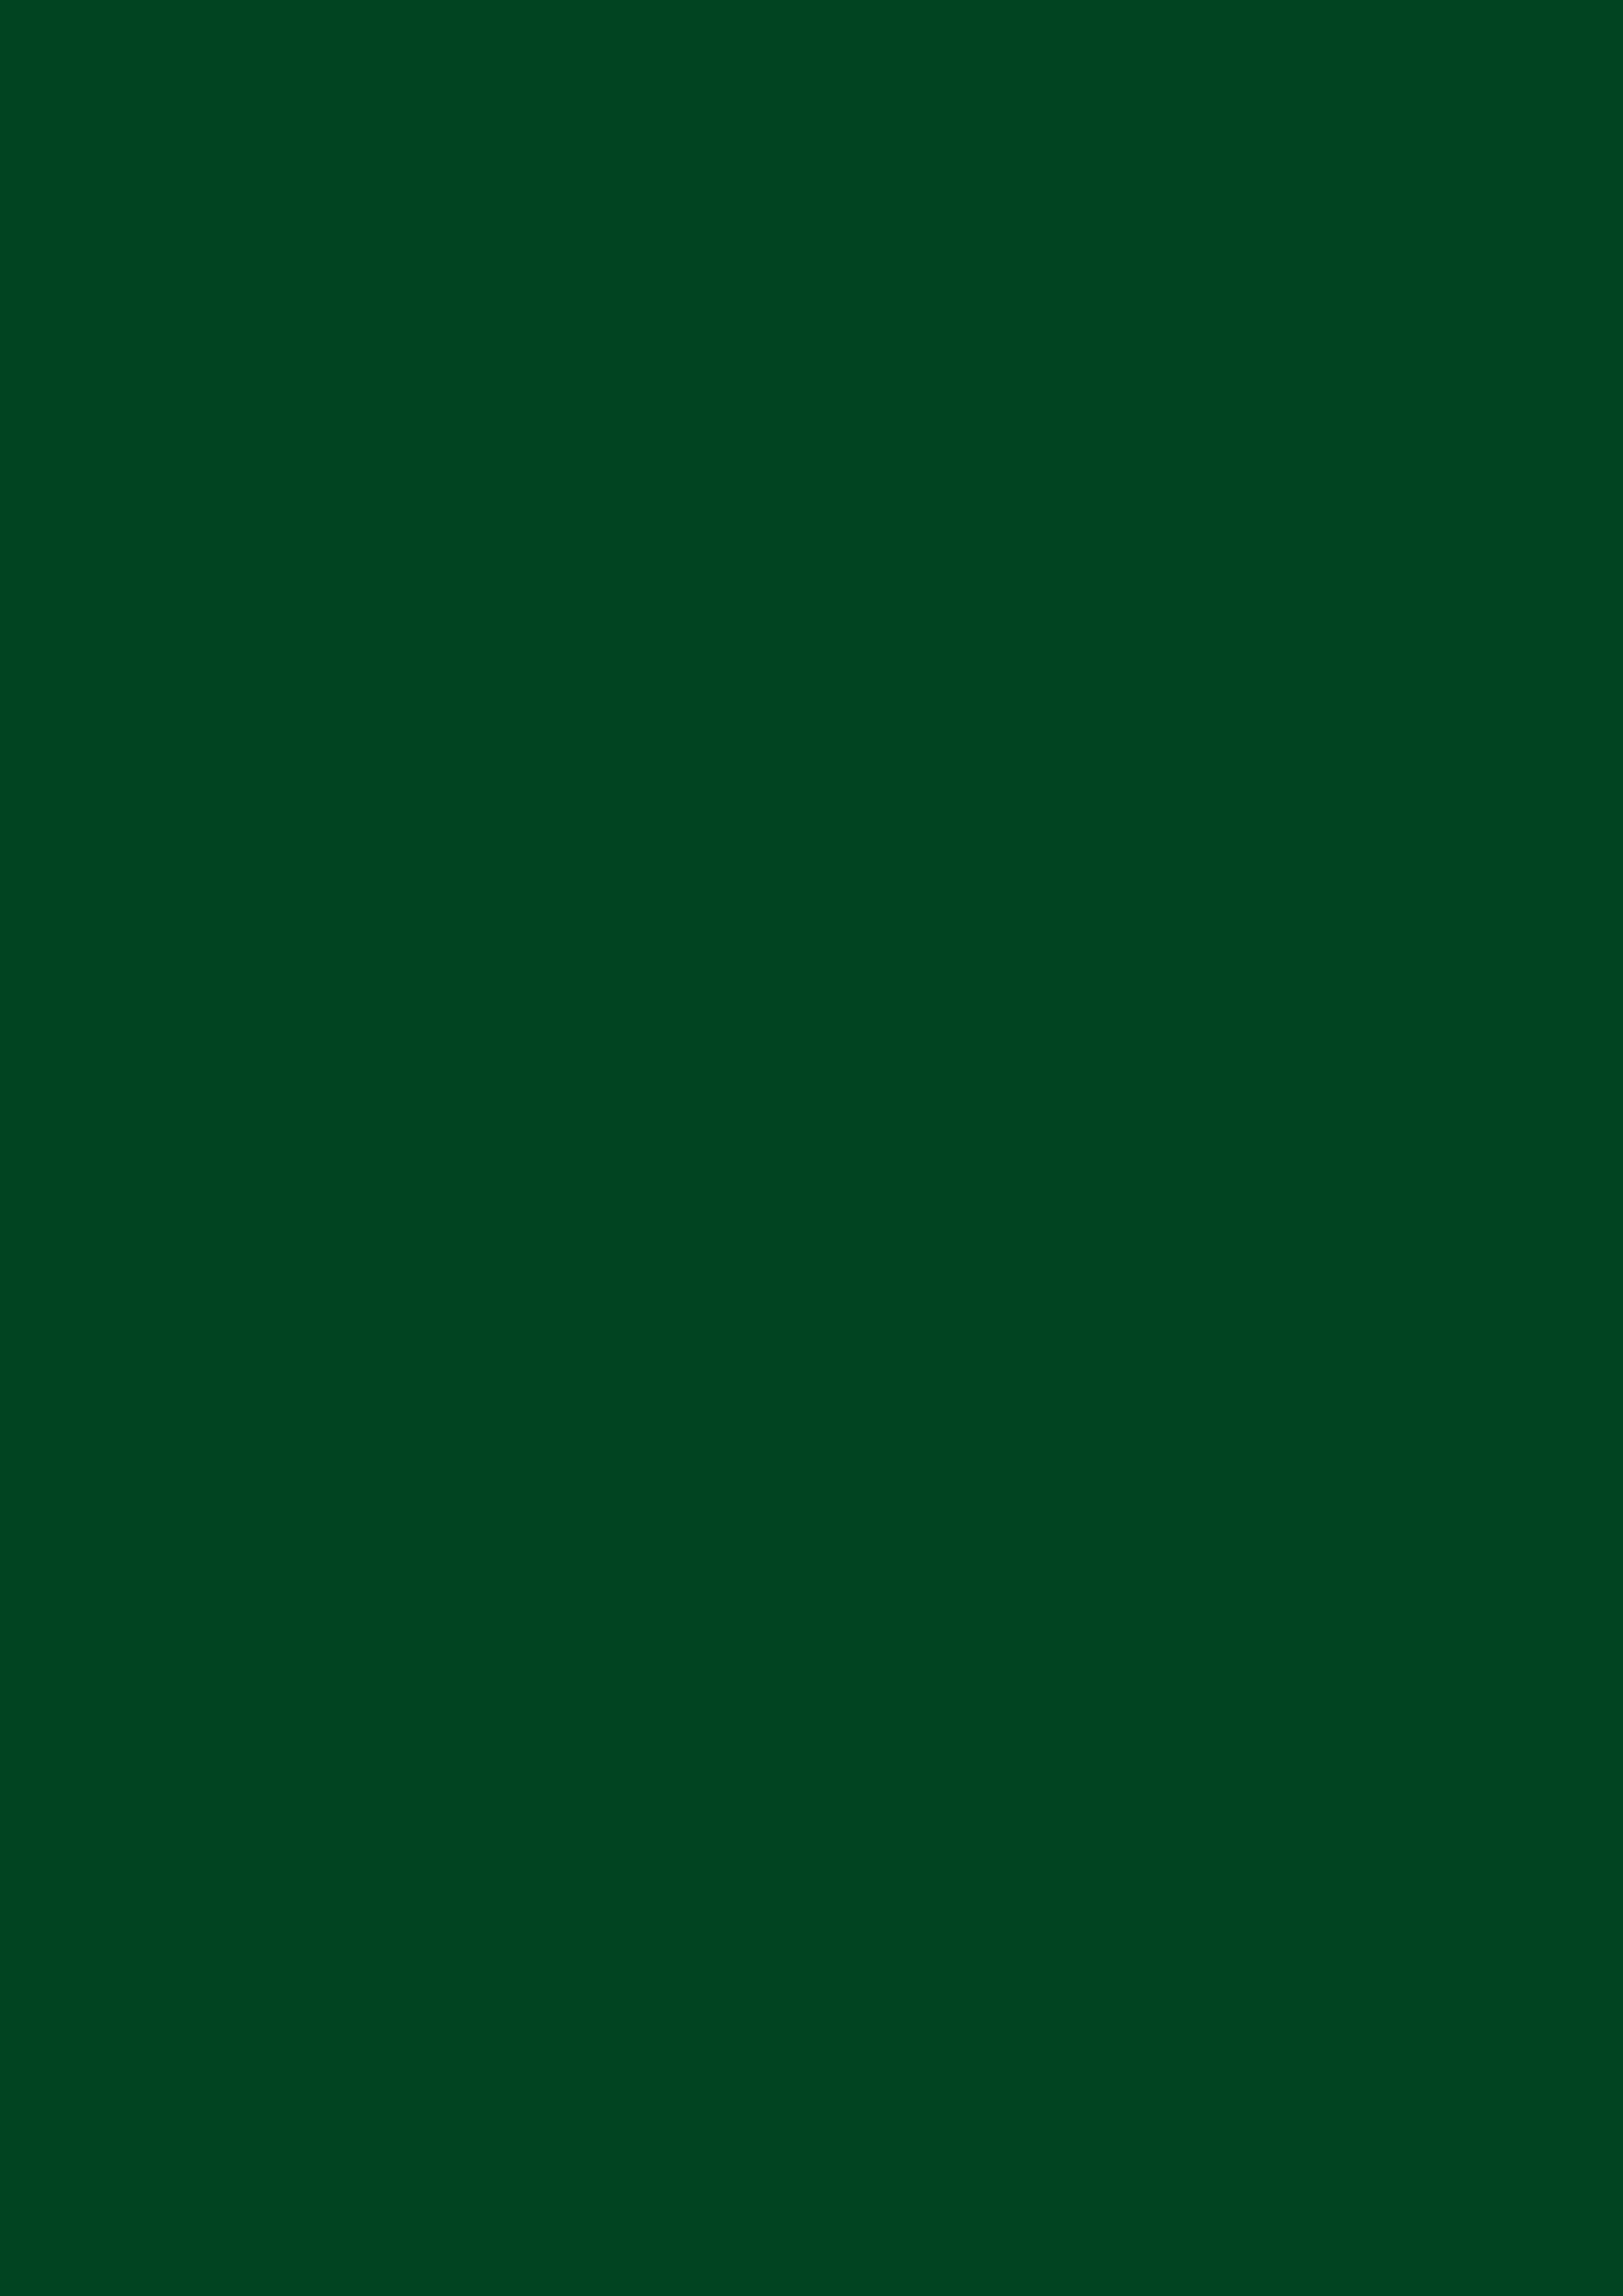 2480x3508 UP Forest Green Solid Color Background